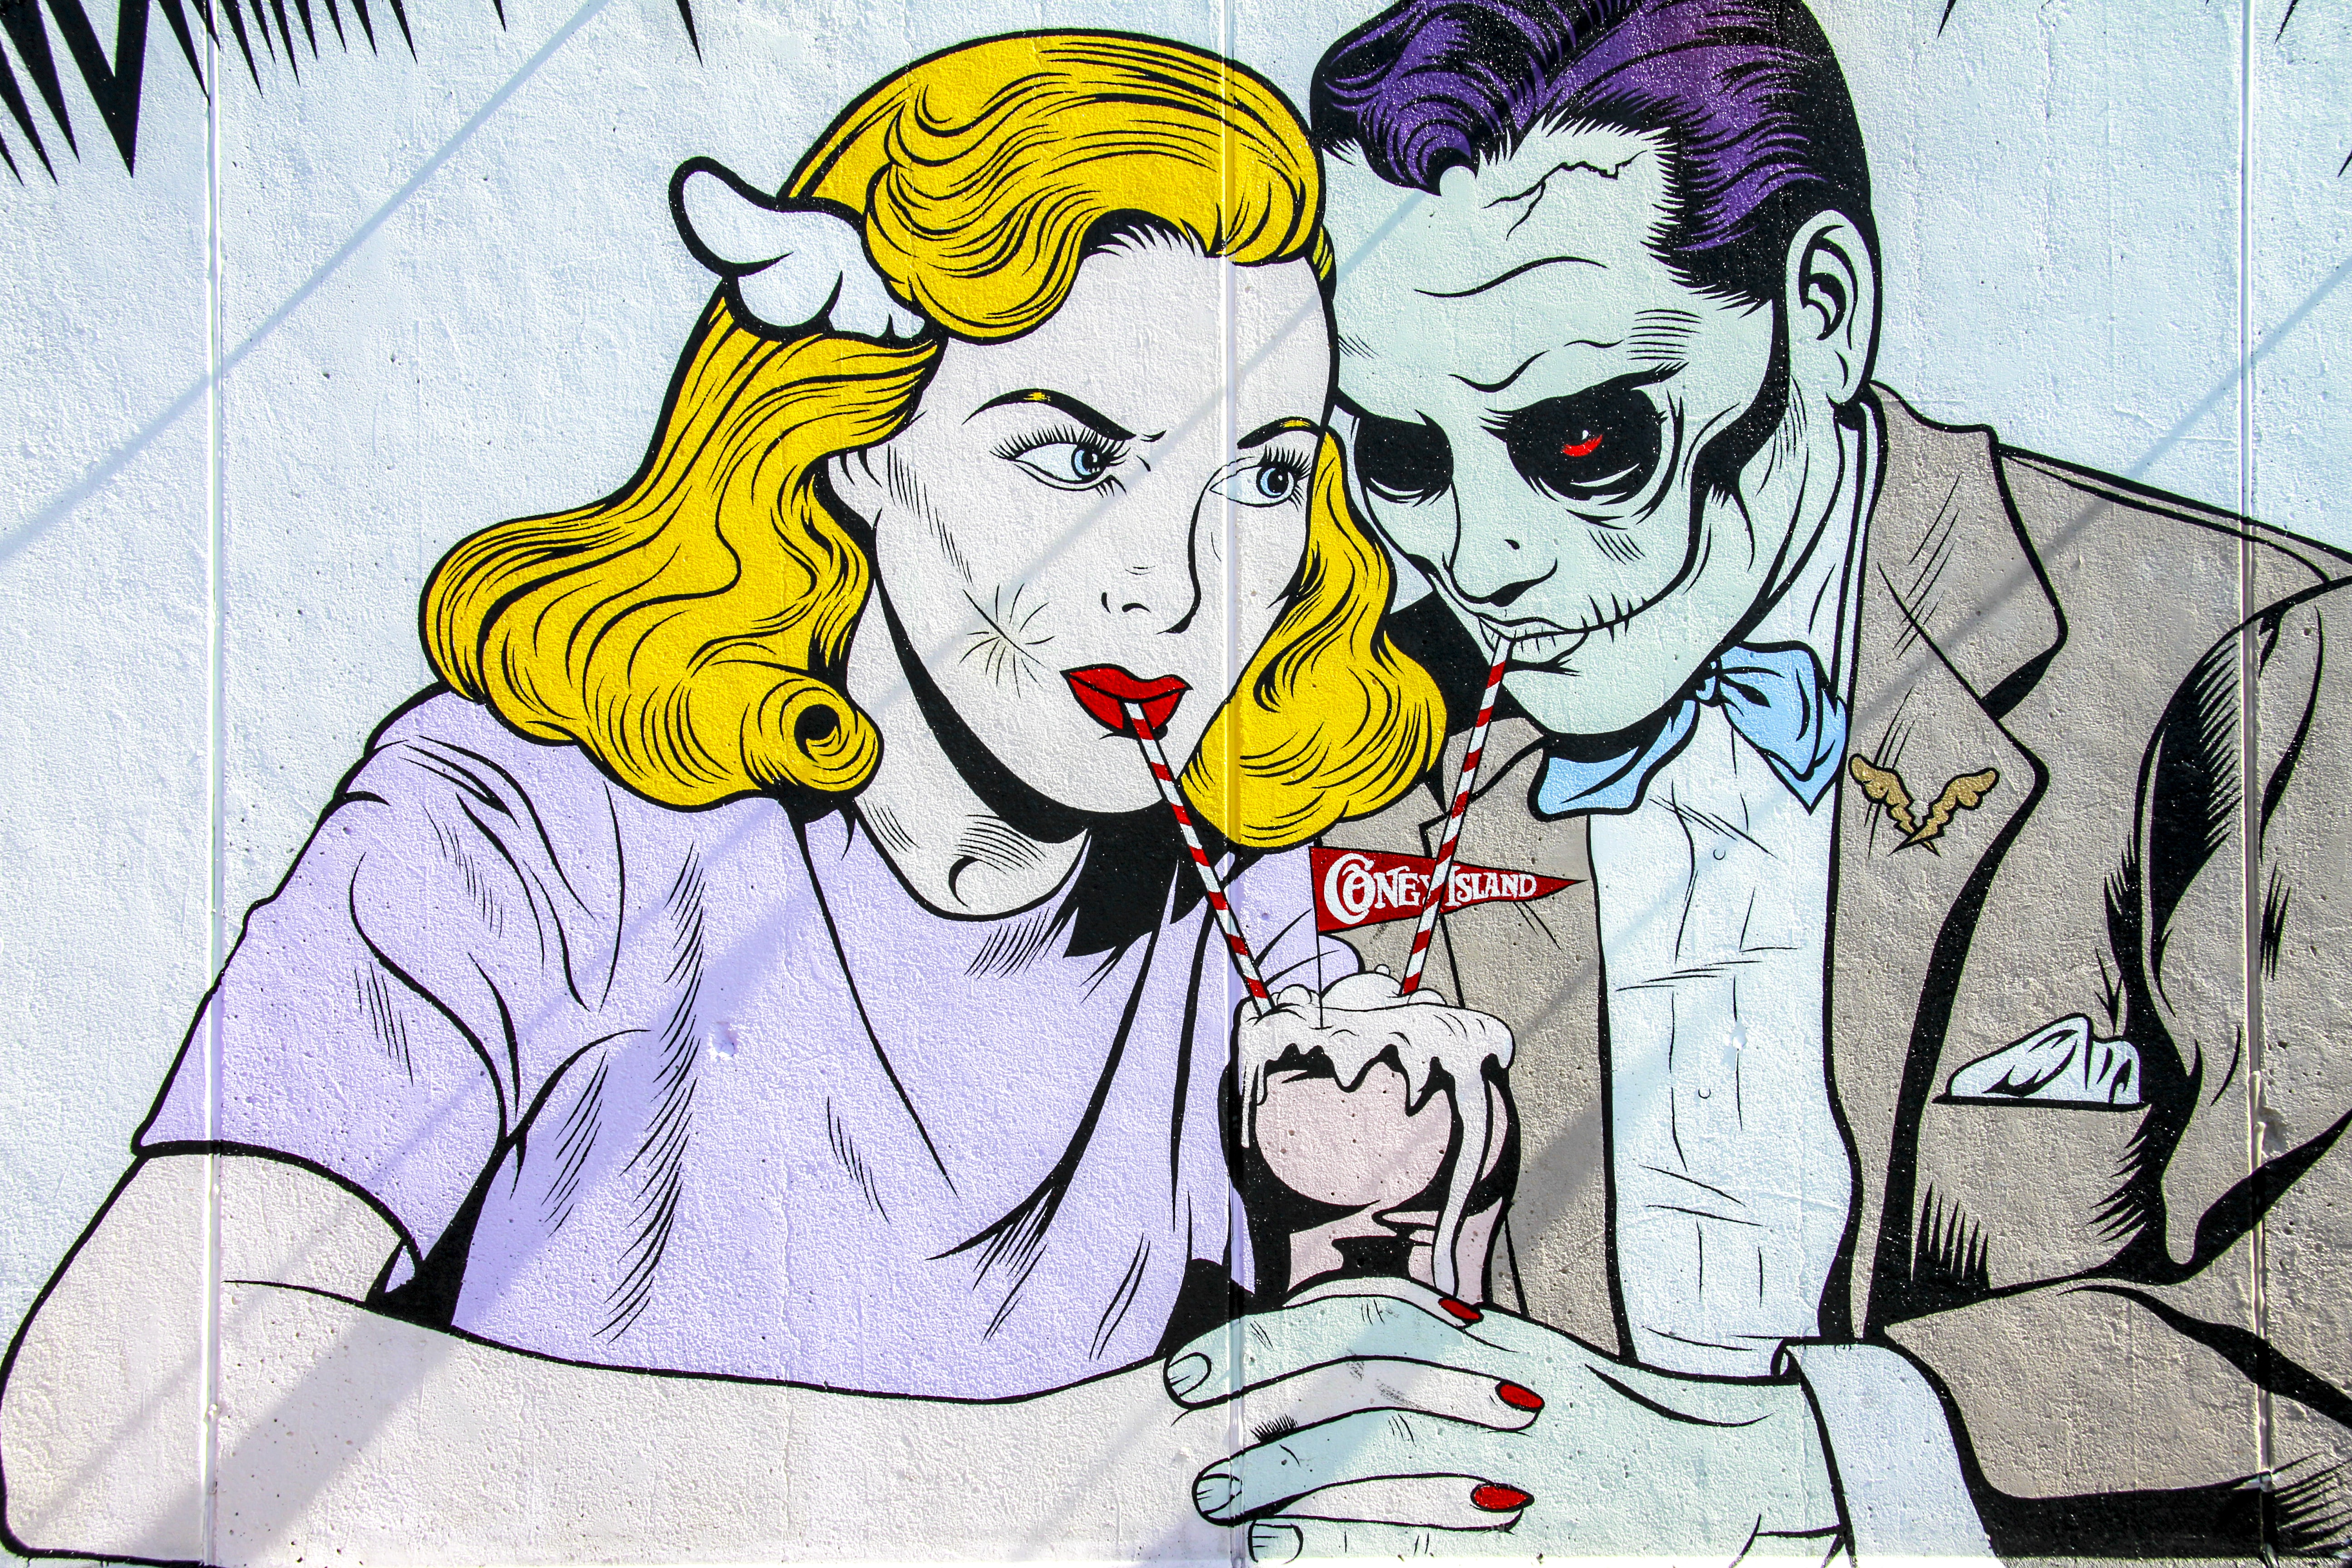 man and woman character drinking photo